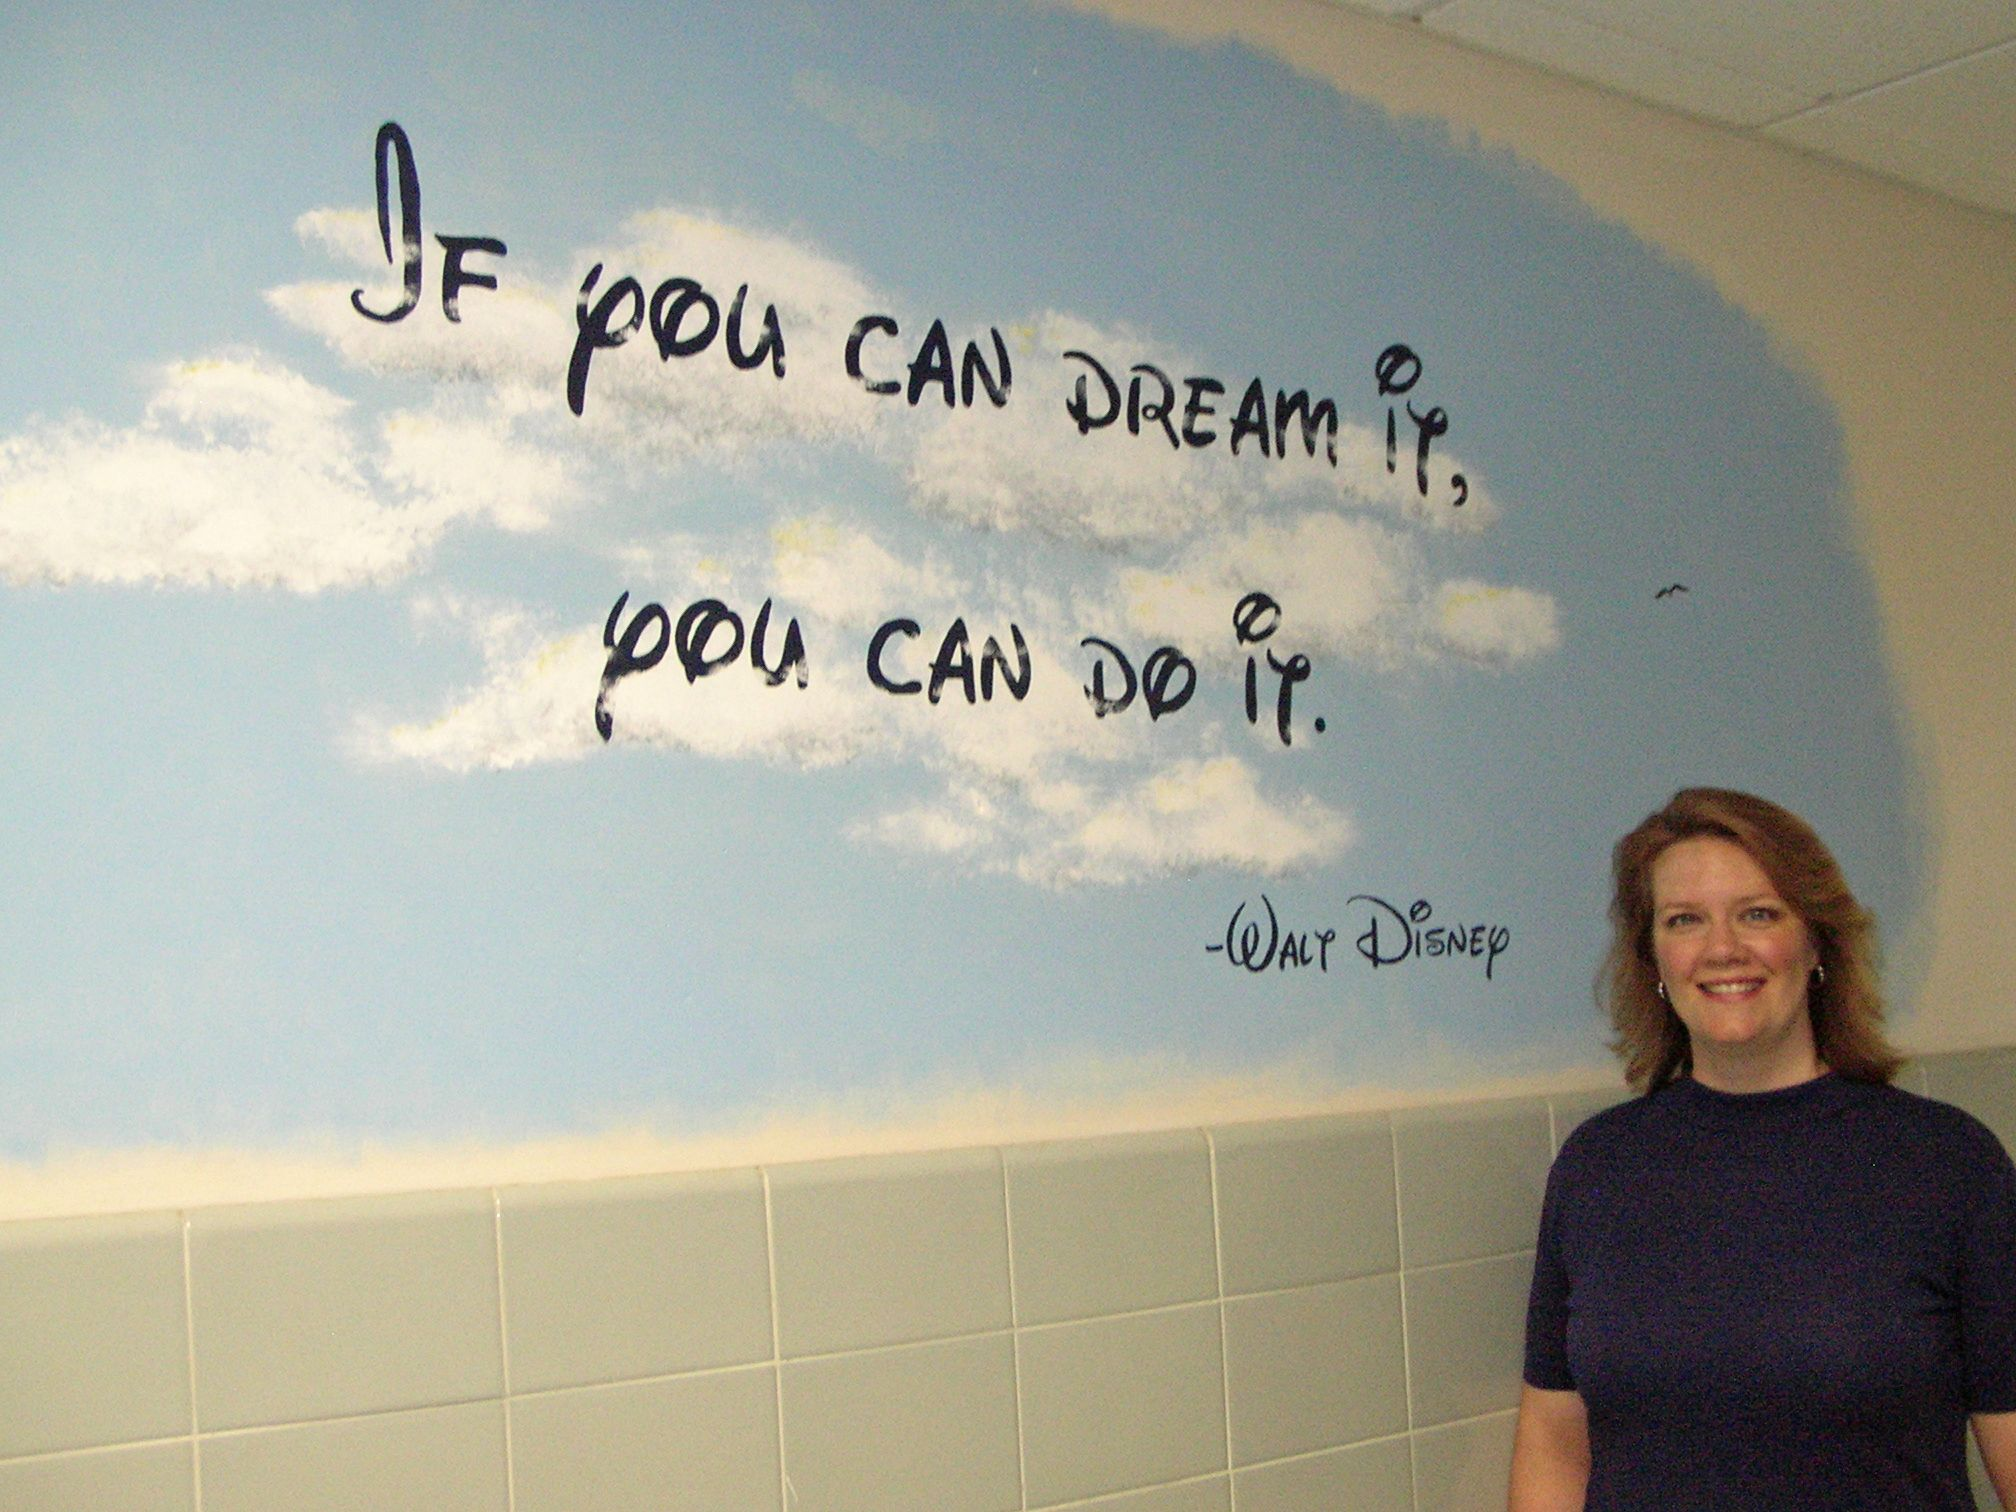 Testing quotes for elementary students - School Quotes For Walls Quotes She Is Painting On The Walls Of